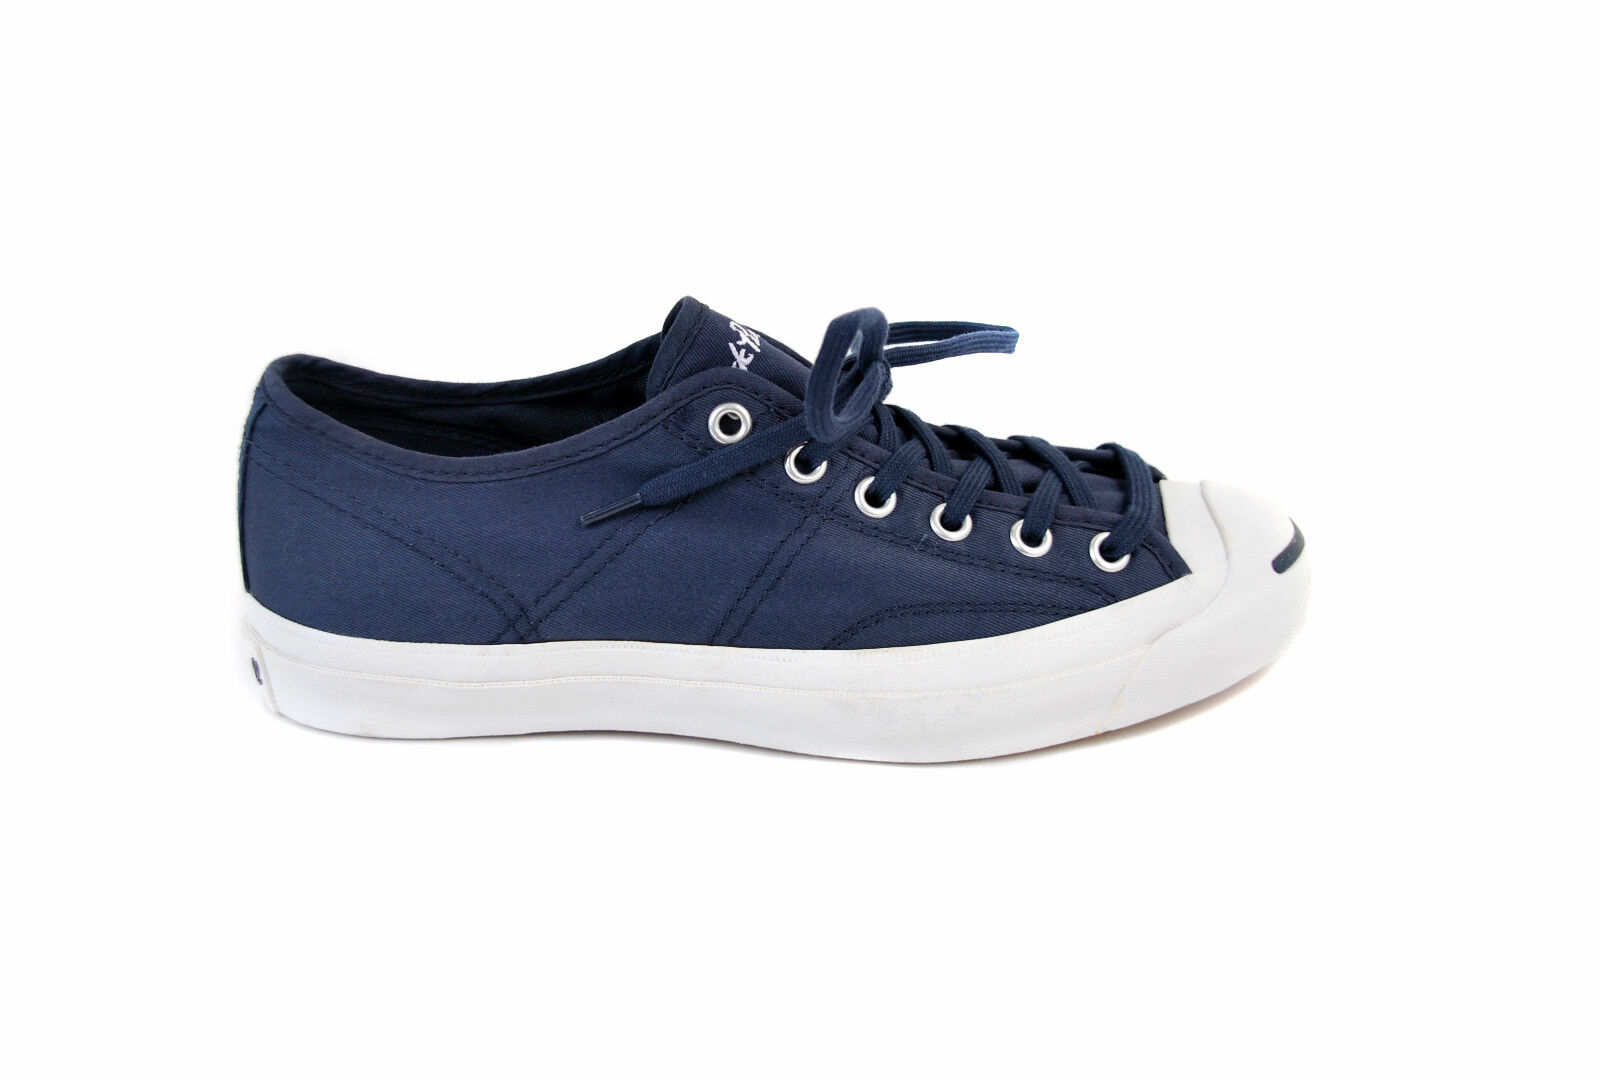 Converse Women's Authentic Trainers JP Hellen Ox bluee Size 37.5 BCF53